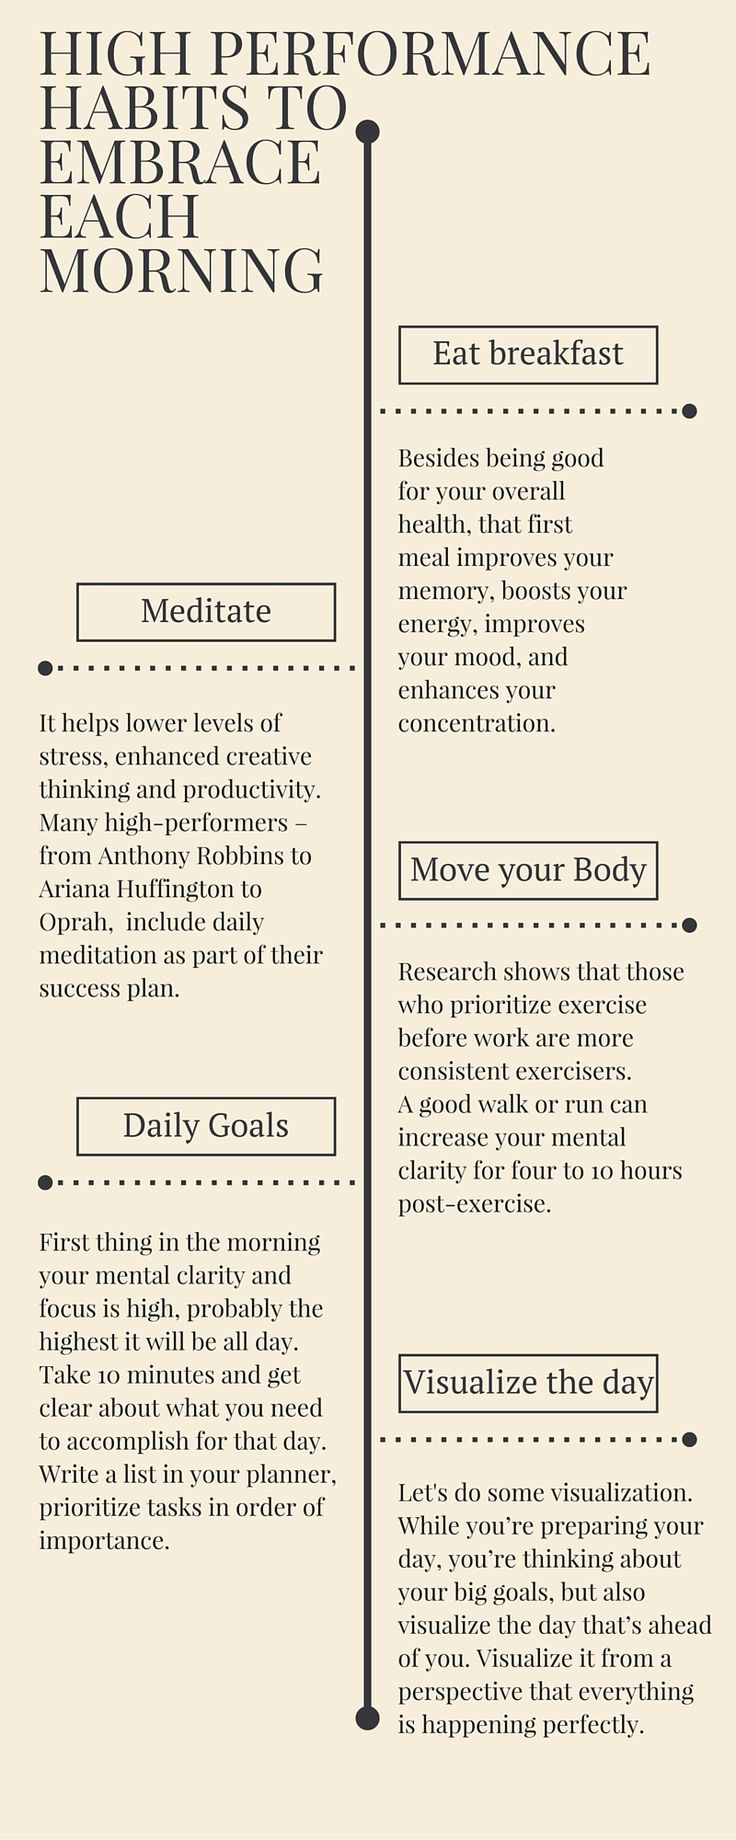 High performance habits to embrace in the morning